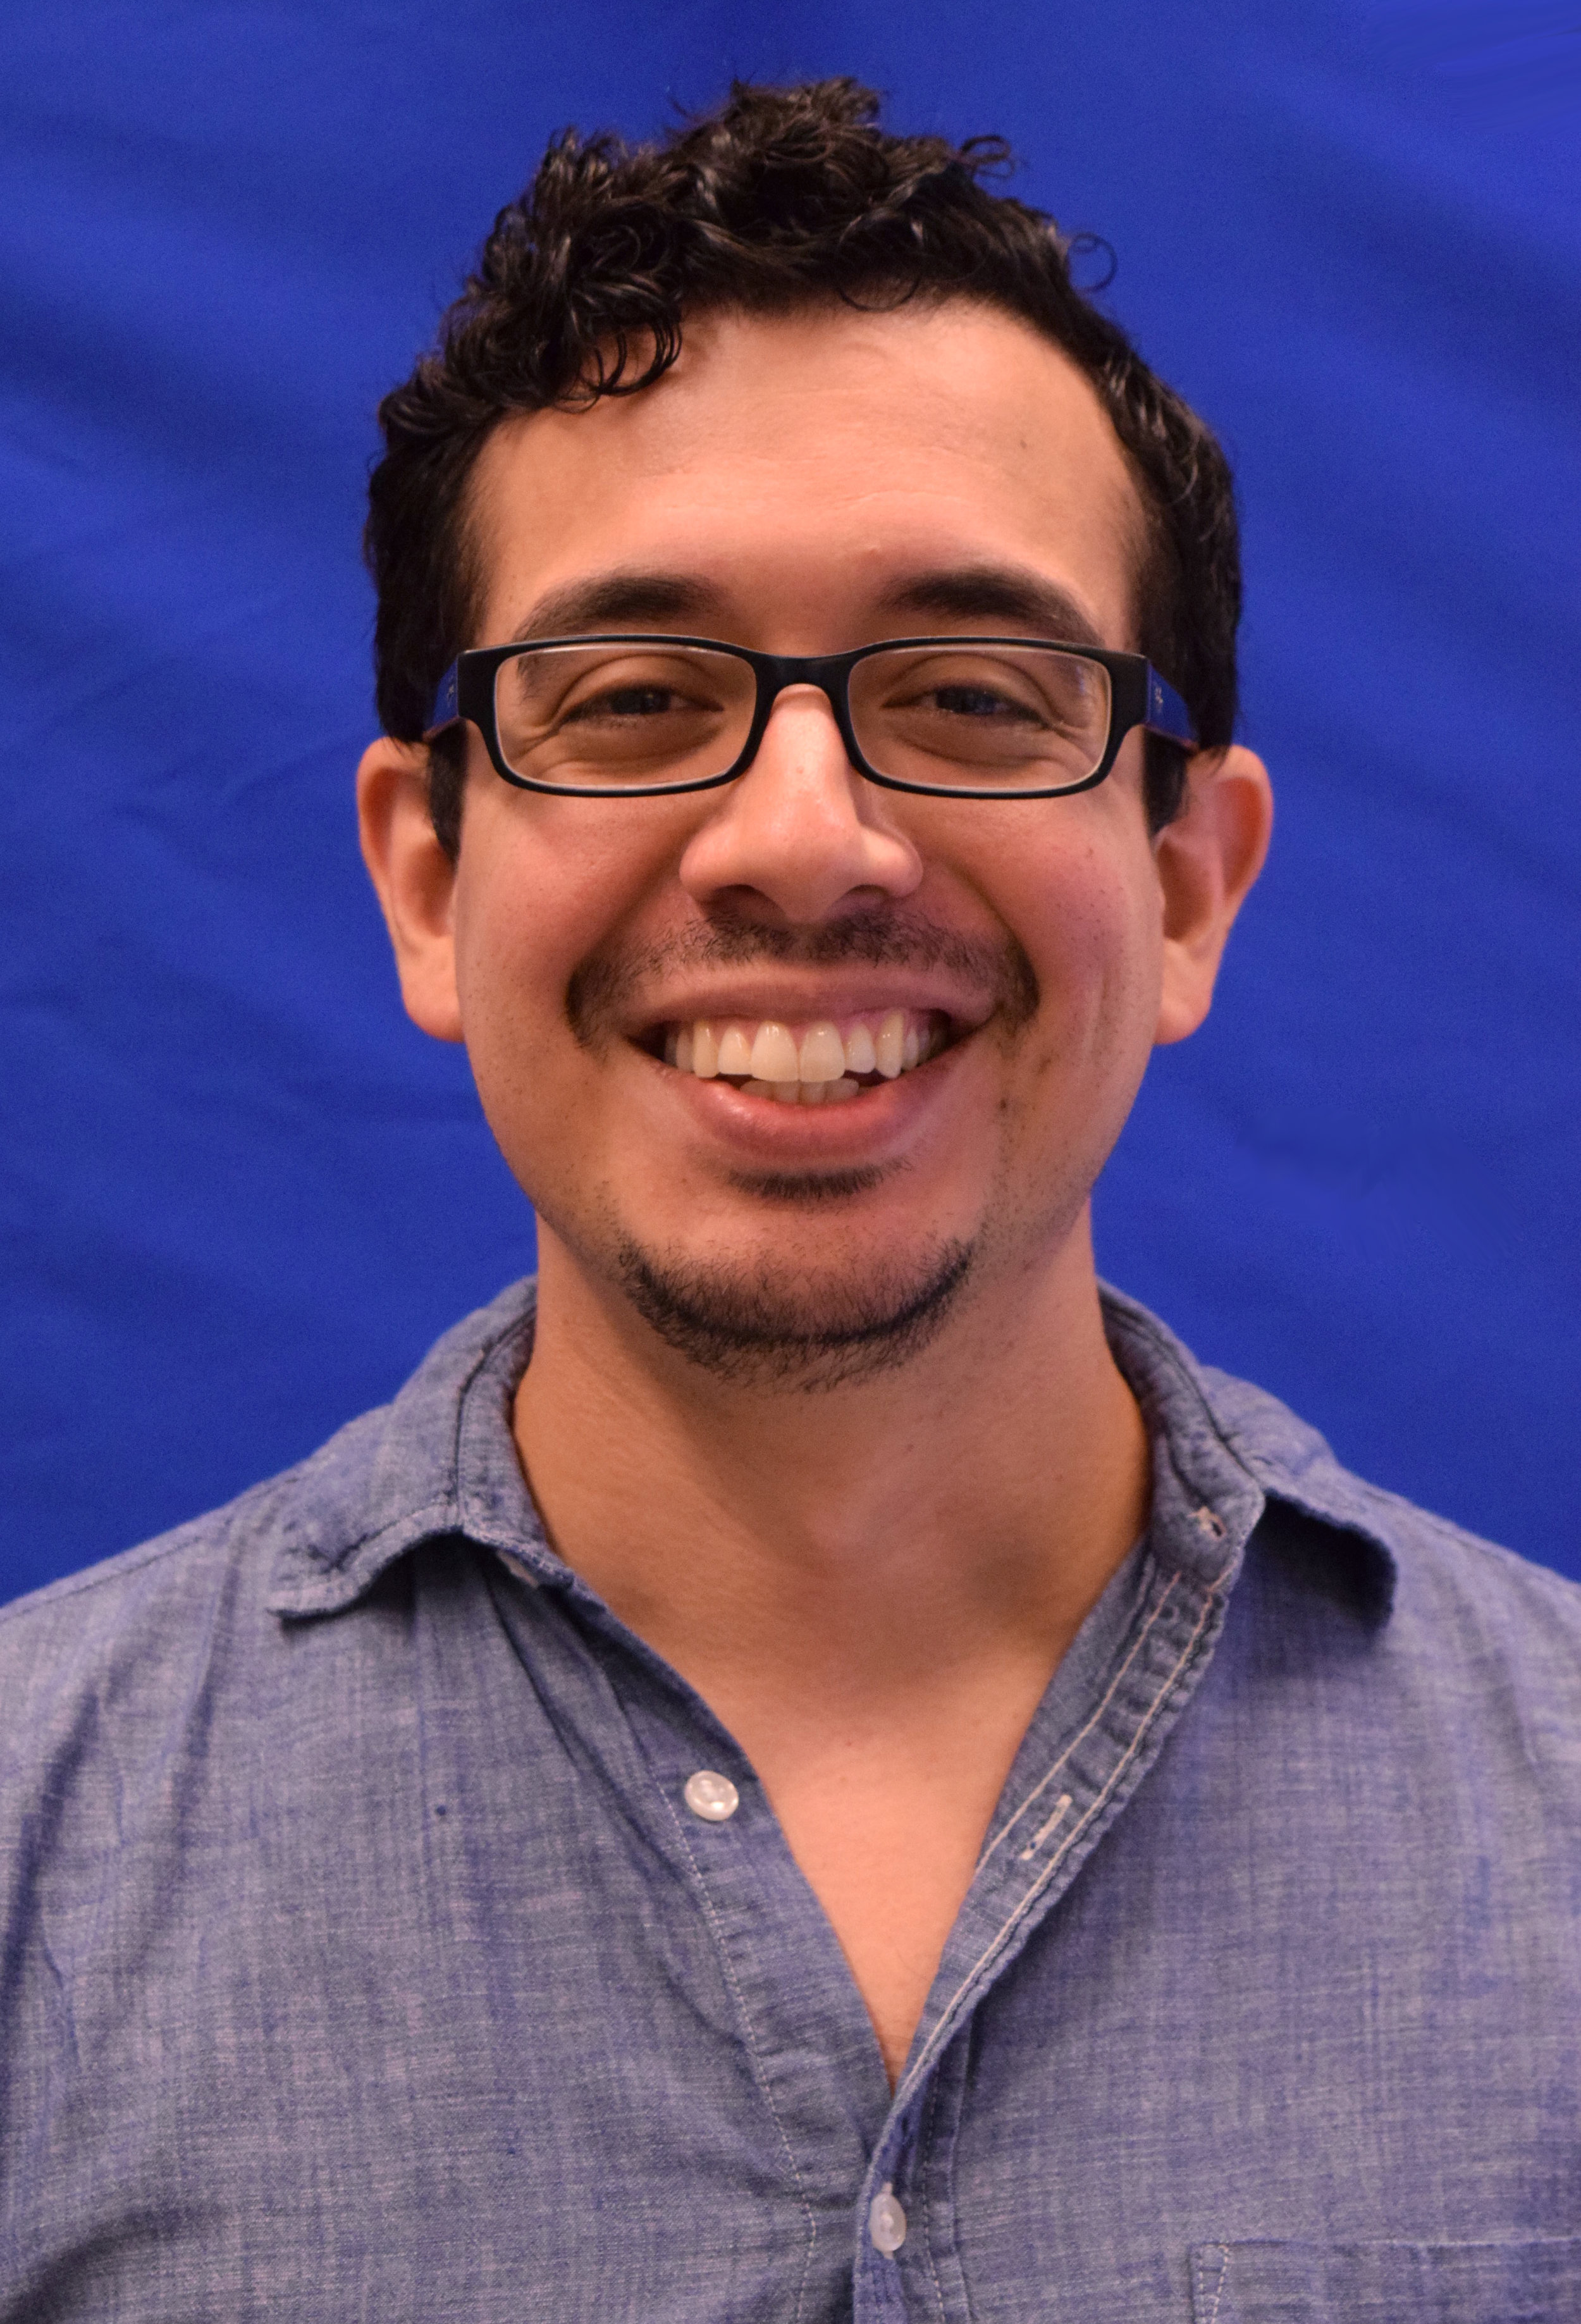 Andrew Matamoros , PhD is a neuroscientist studying nerve regeneration at The Children's Hospital of Philadelphia and a PennPORT postdoctoral-research fellow promoting STEM education at University of Pennsylvania.